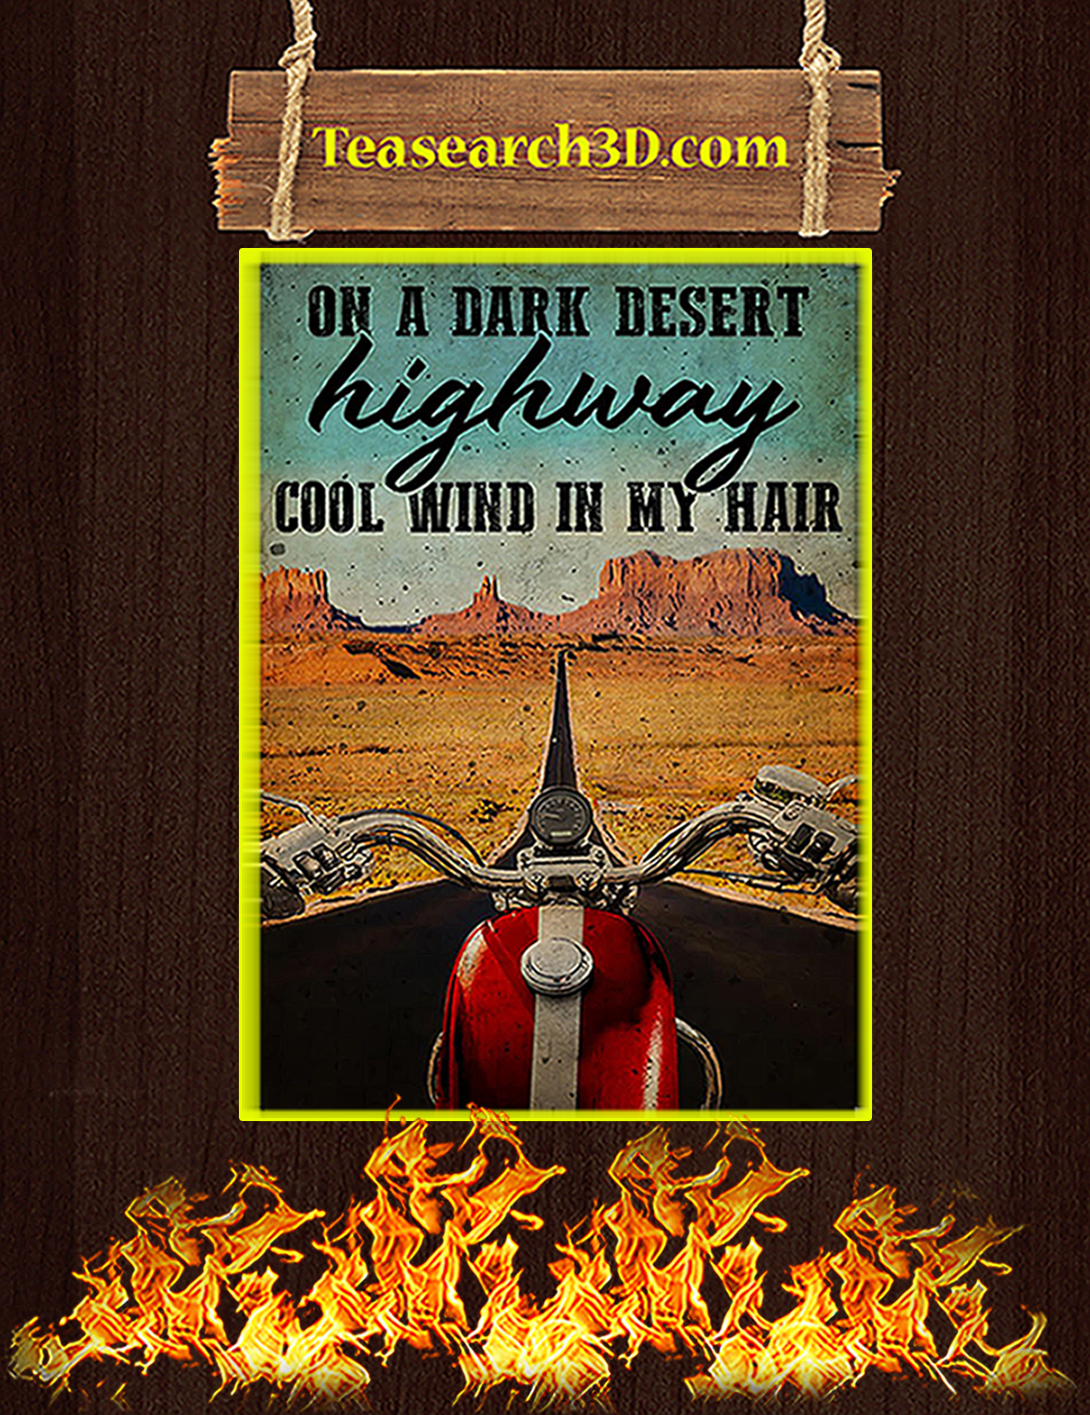 Biker on a dark desert highway cool wind in my hair poster A2